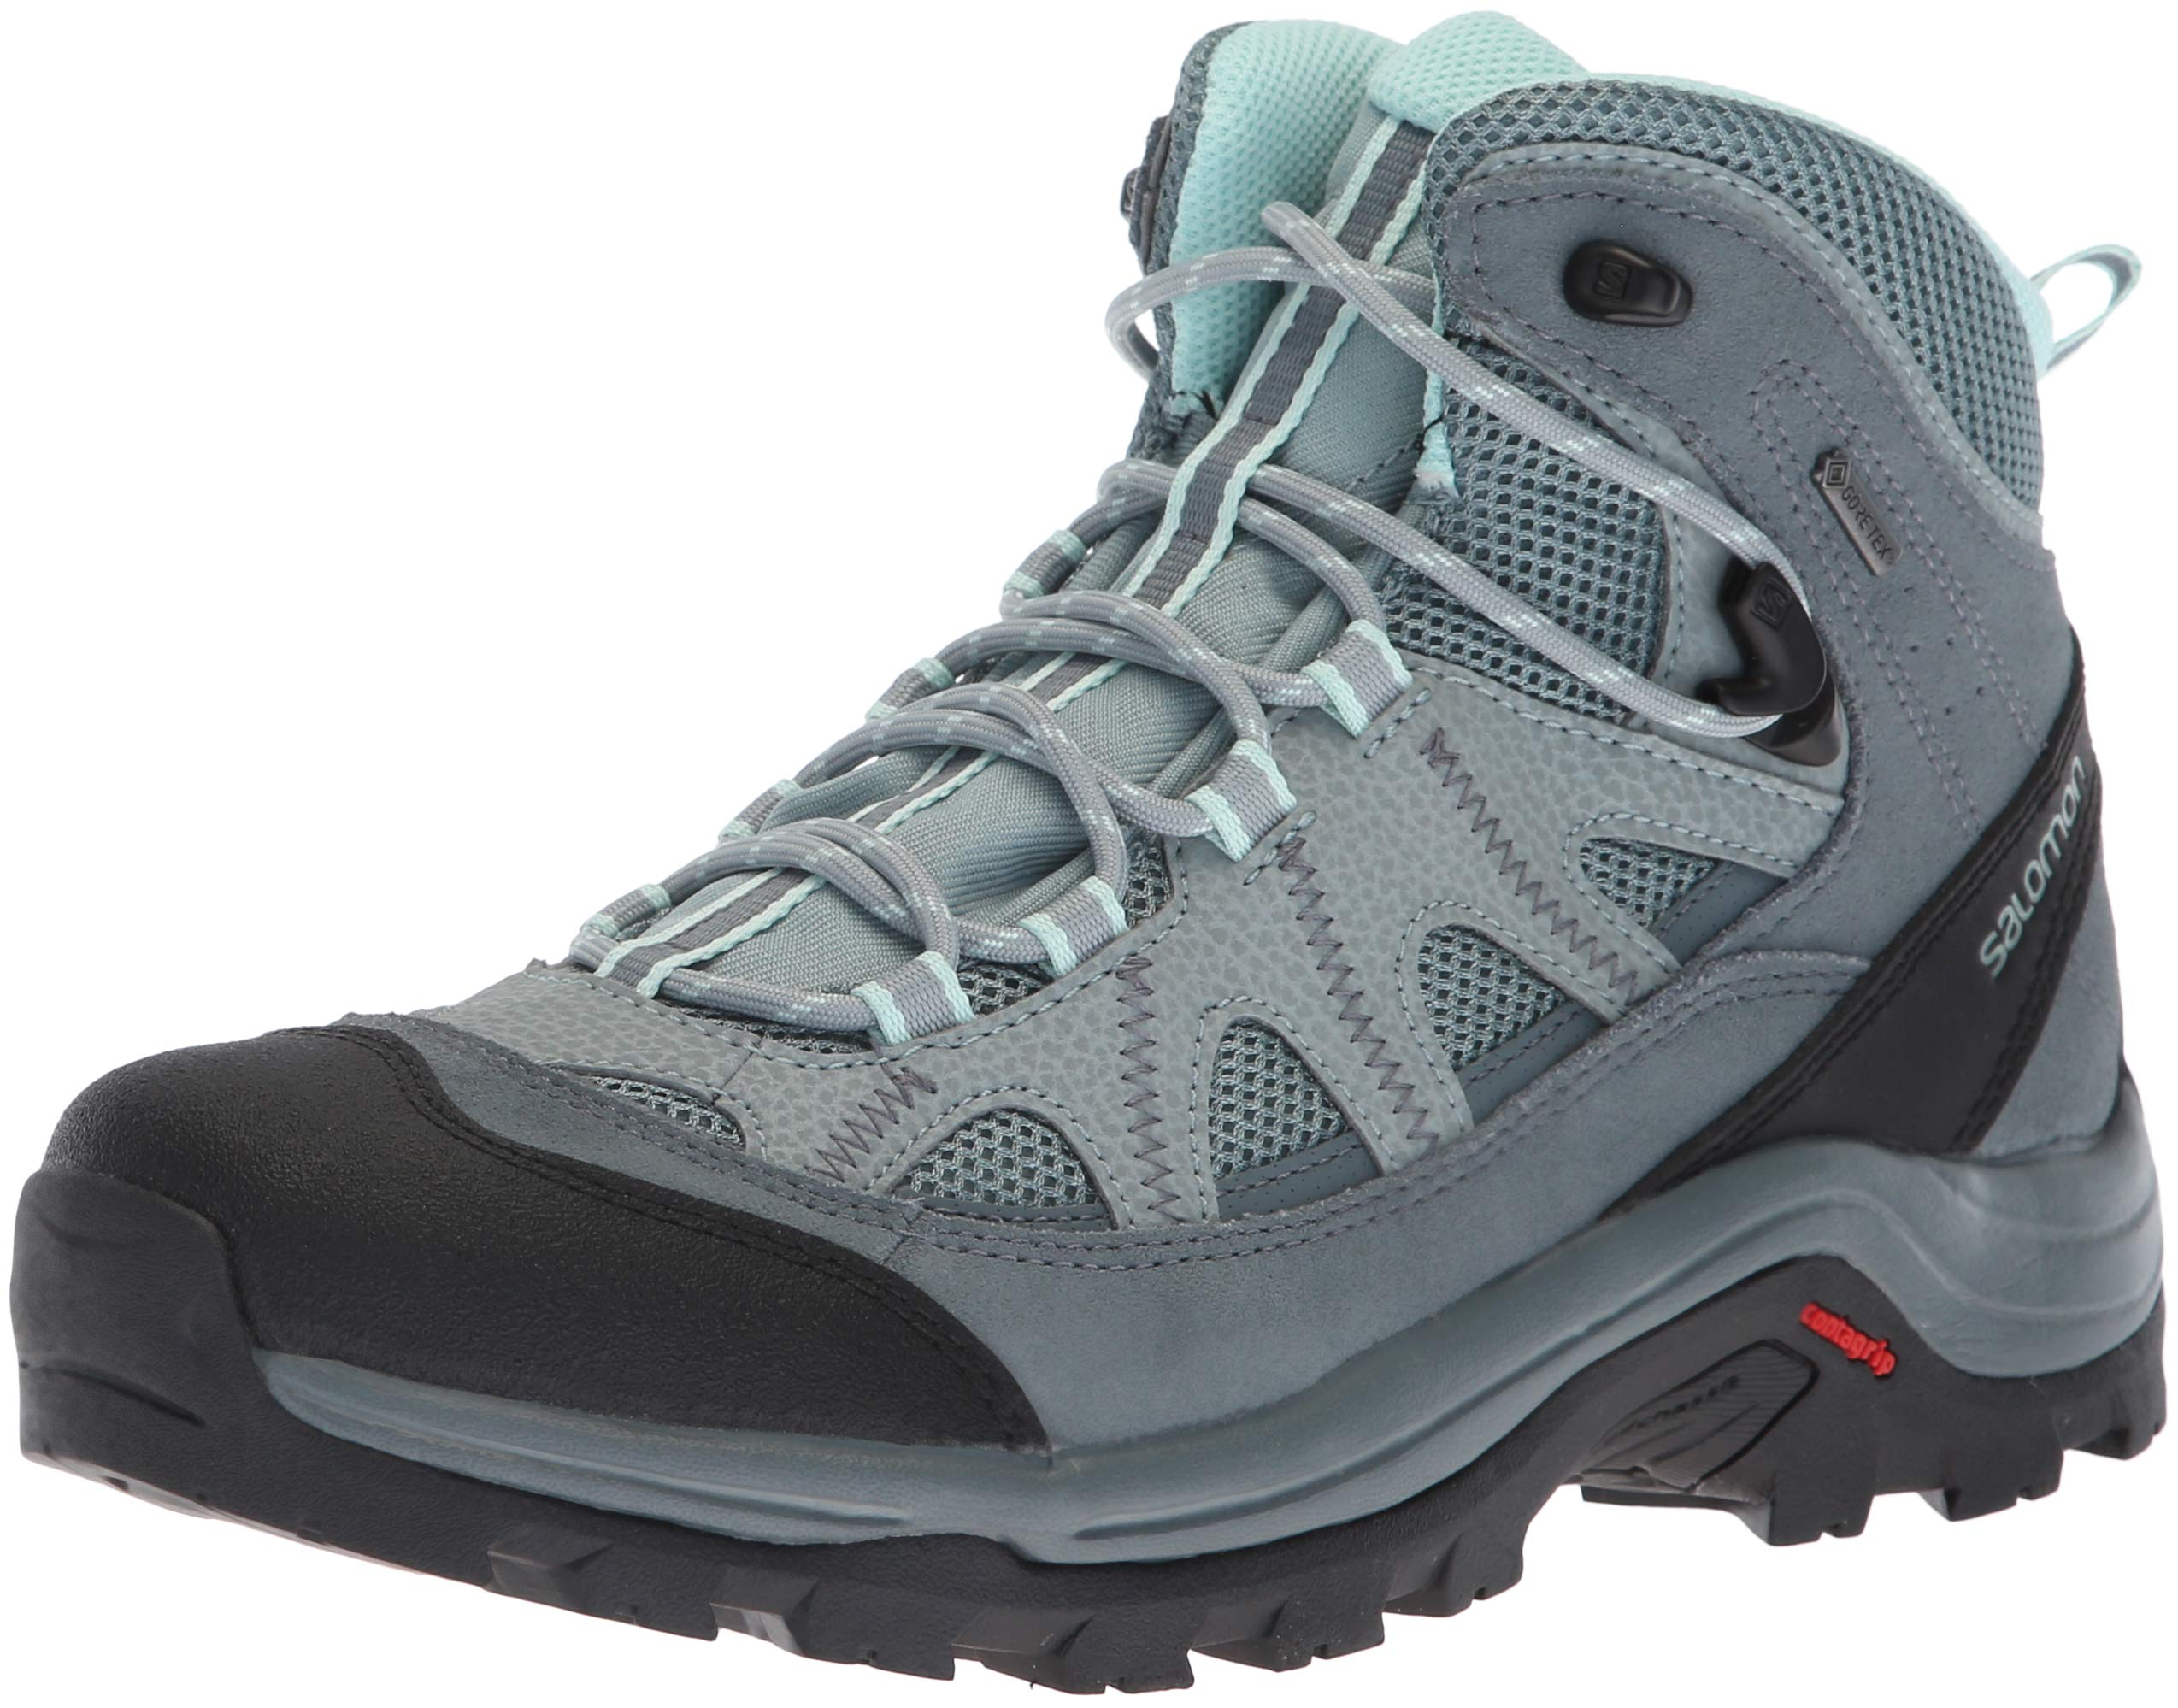 Salomon Women's Authentic LTR GTX W Backpacking Boot, Lead/Stormy Weather/Eggshell Blue, 5.5 B US